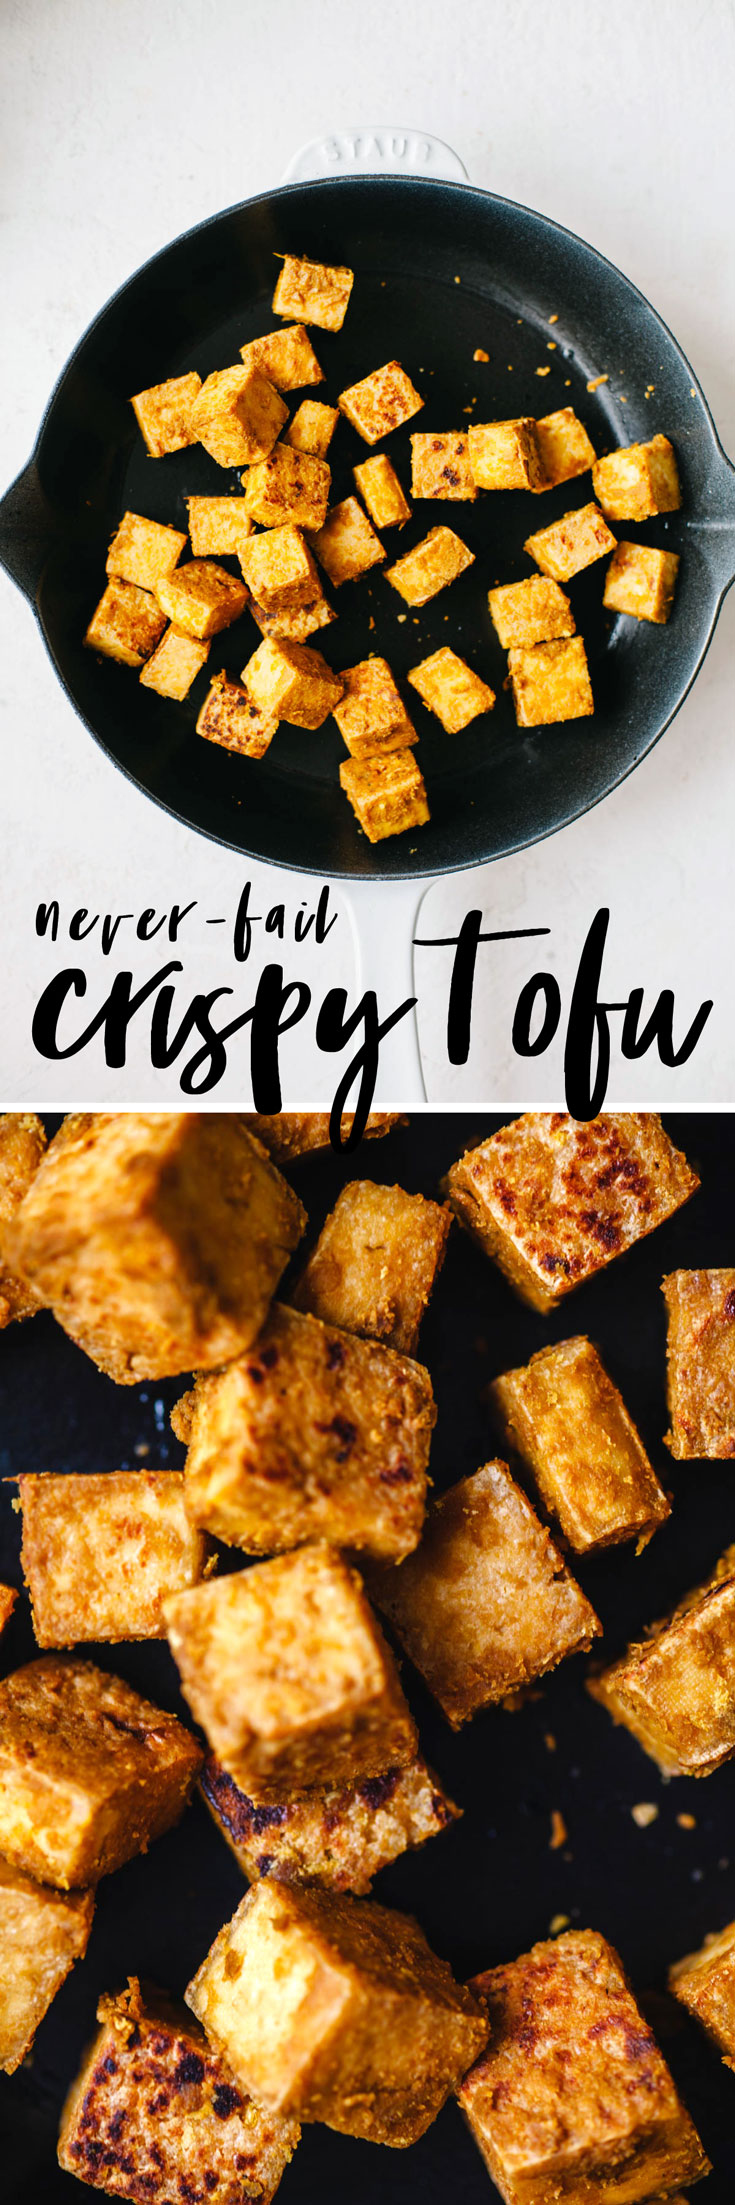 Learn how to trust your instincts in the kitchen with this easy and delicious Never-Fail Crispy Tofu recipe. Perfect to put on salad, bowls, soup, etc. #tofu #crispytofu #vegan #vegetarian | Brewing Happiness